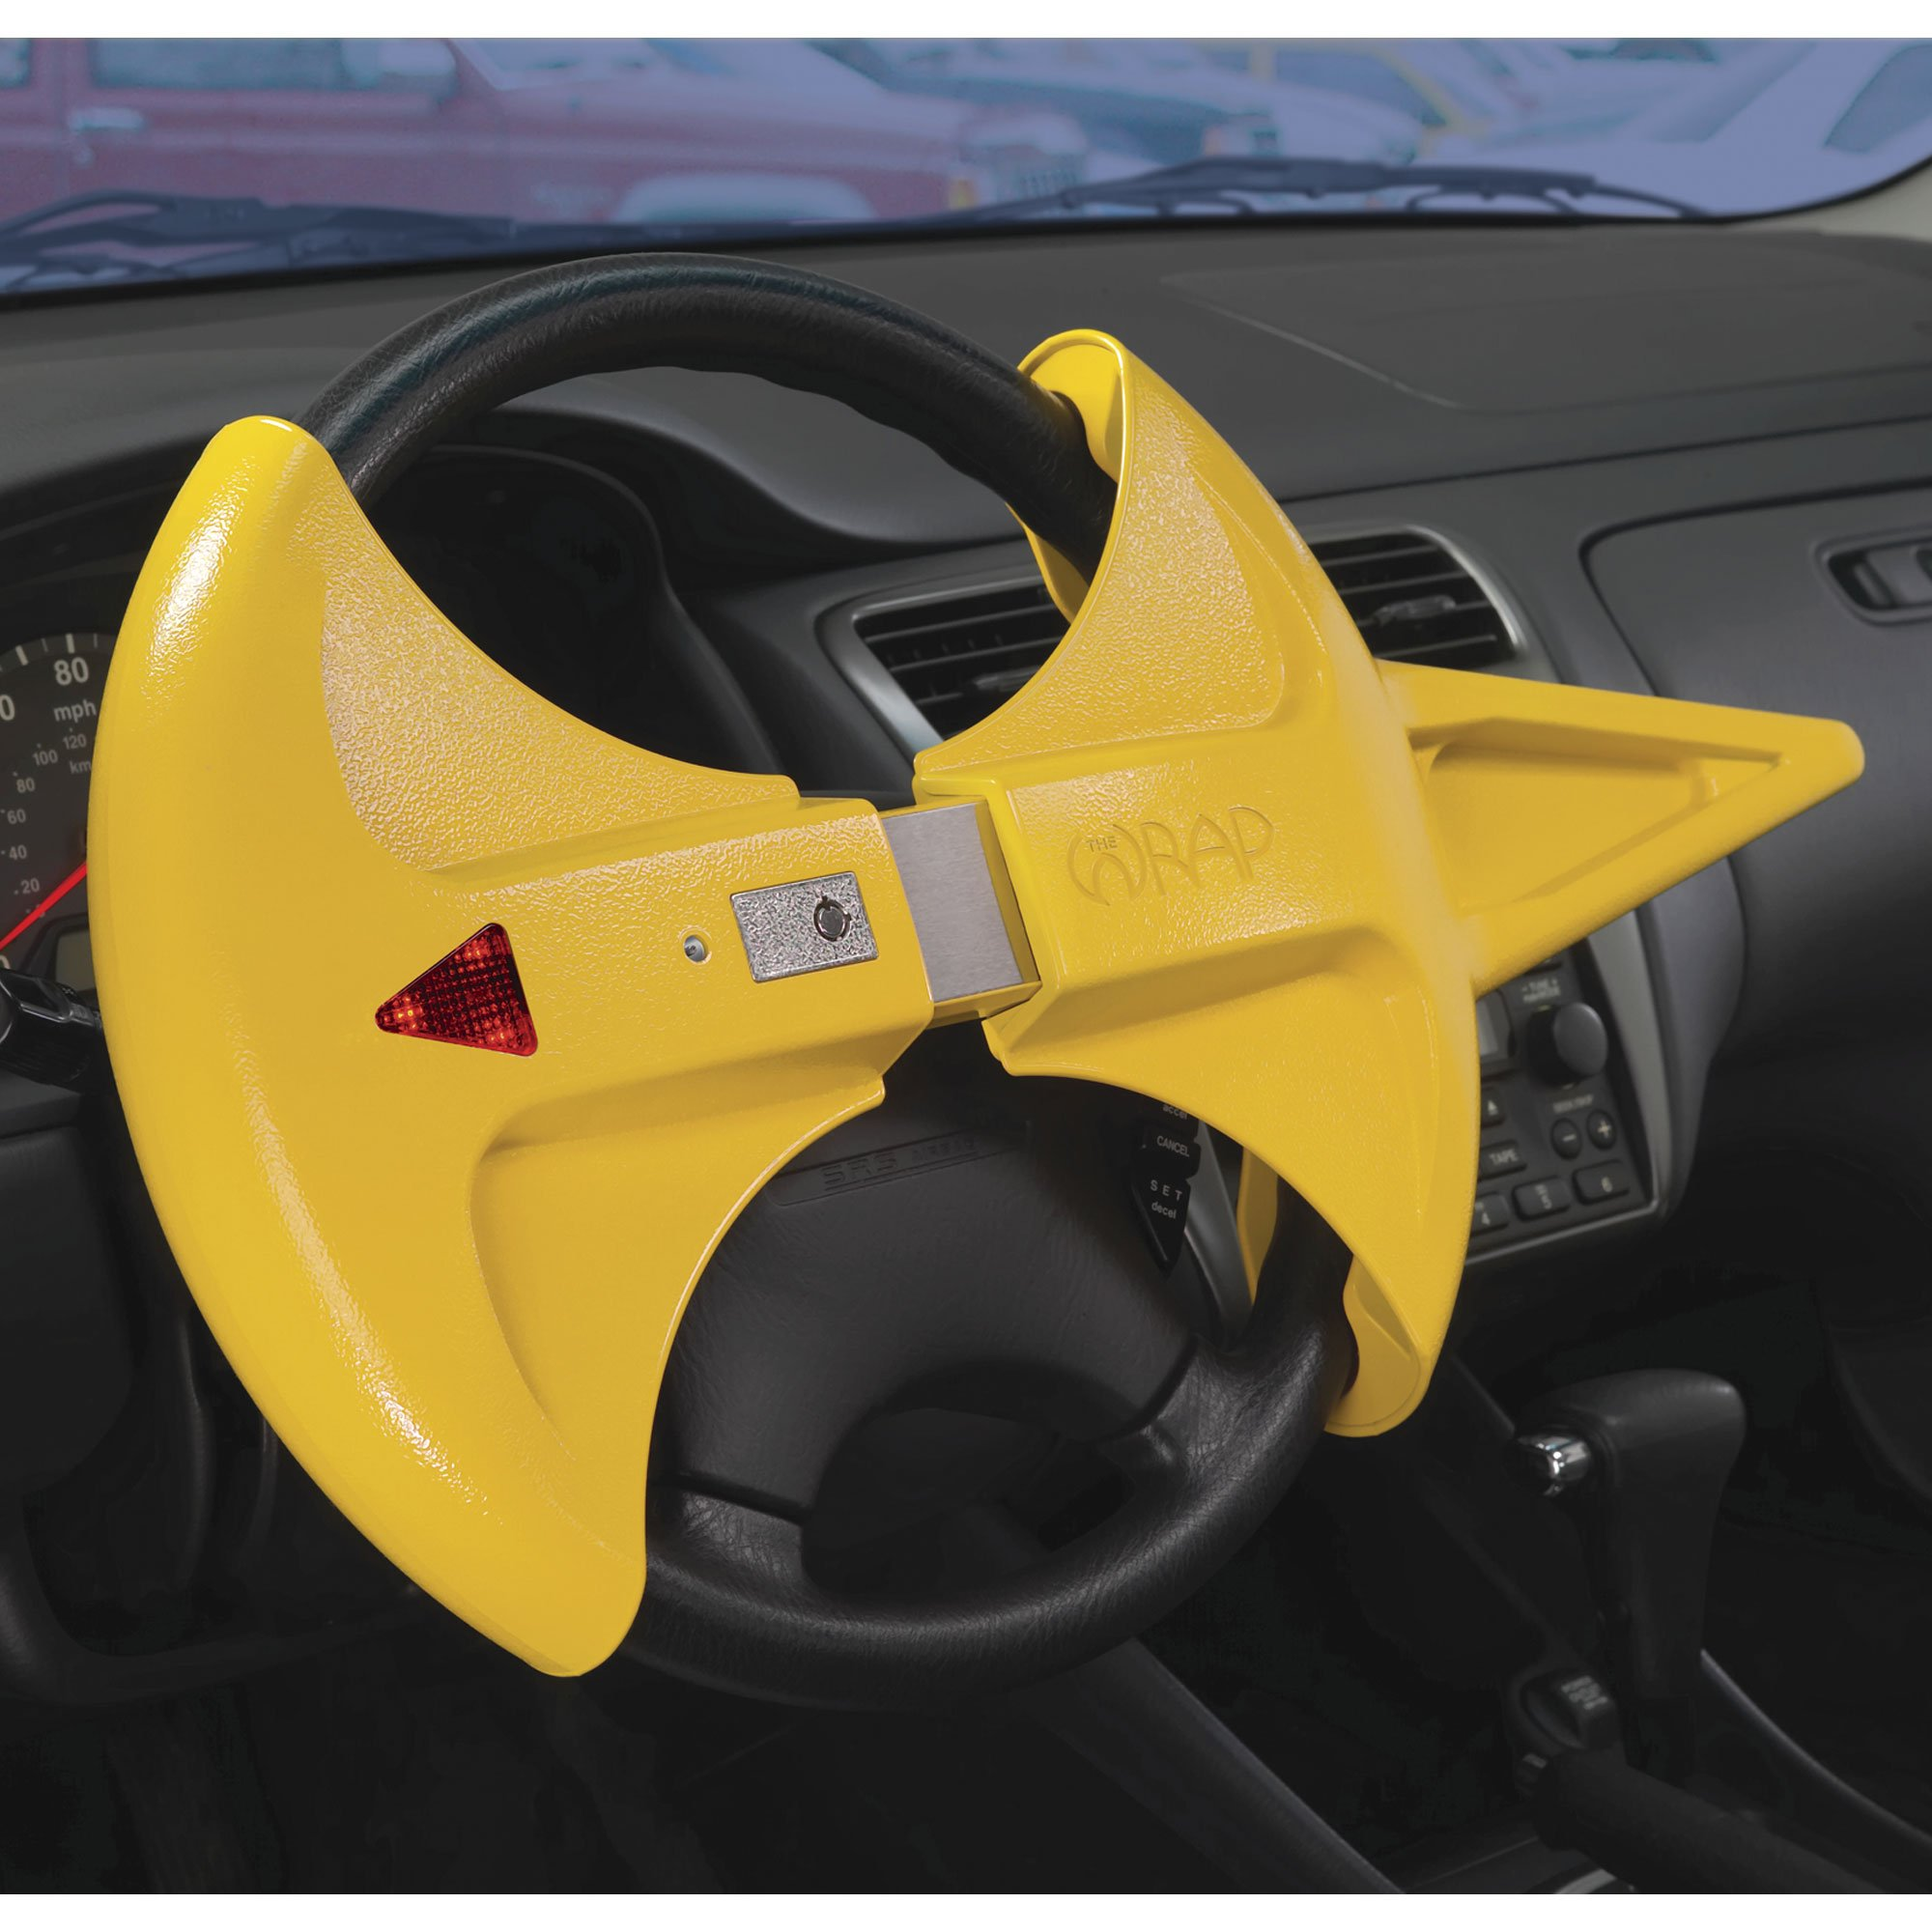 Blockit Wrap Vehicle Theft Steering Wheel Lock with Alarm by Wrap!